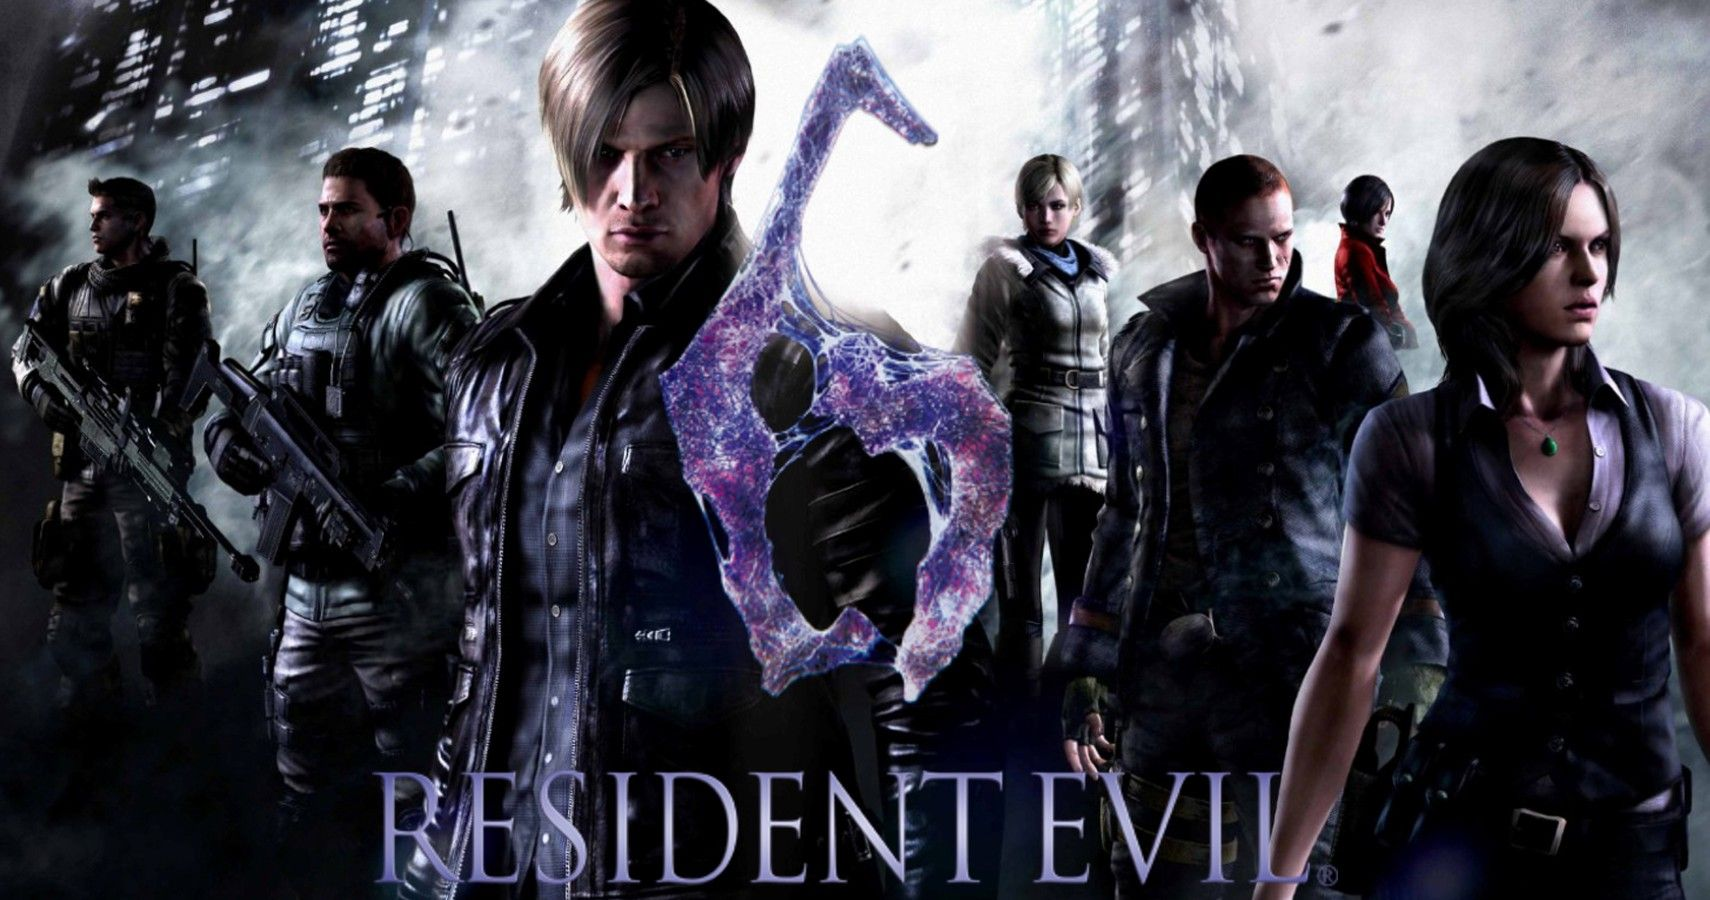 Resident Evil 6 10 Hidden Details About The Main Characters